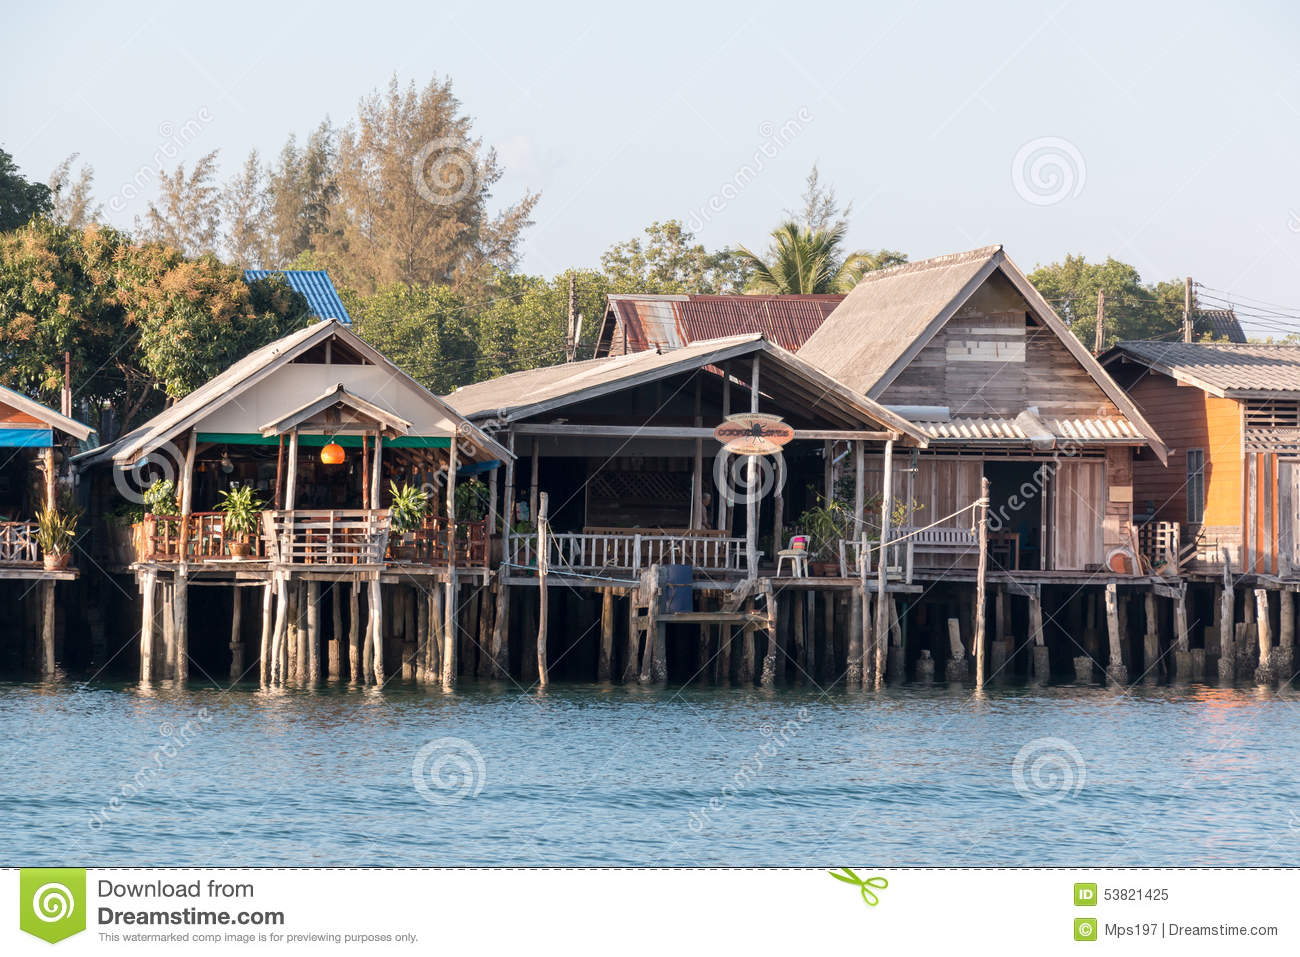 Buildings Have Been Built On Piers Over Water At